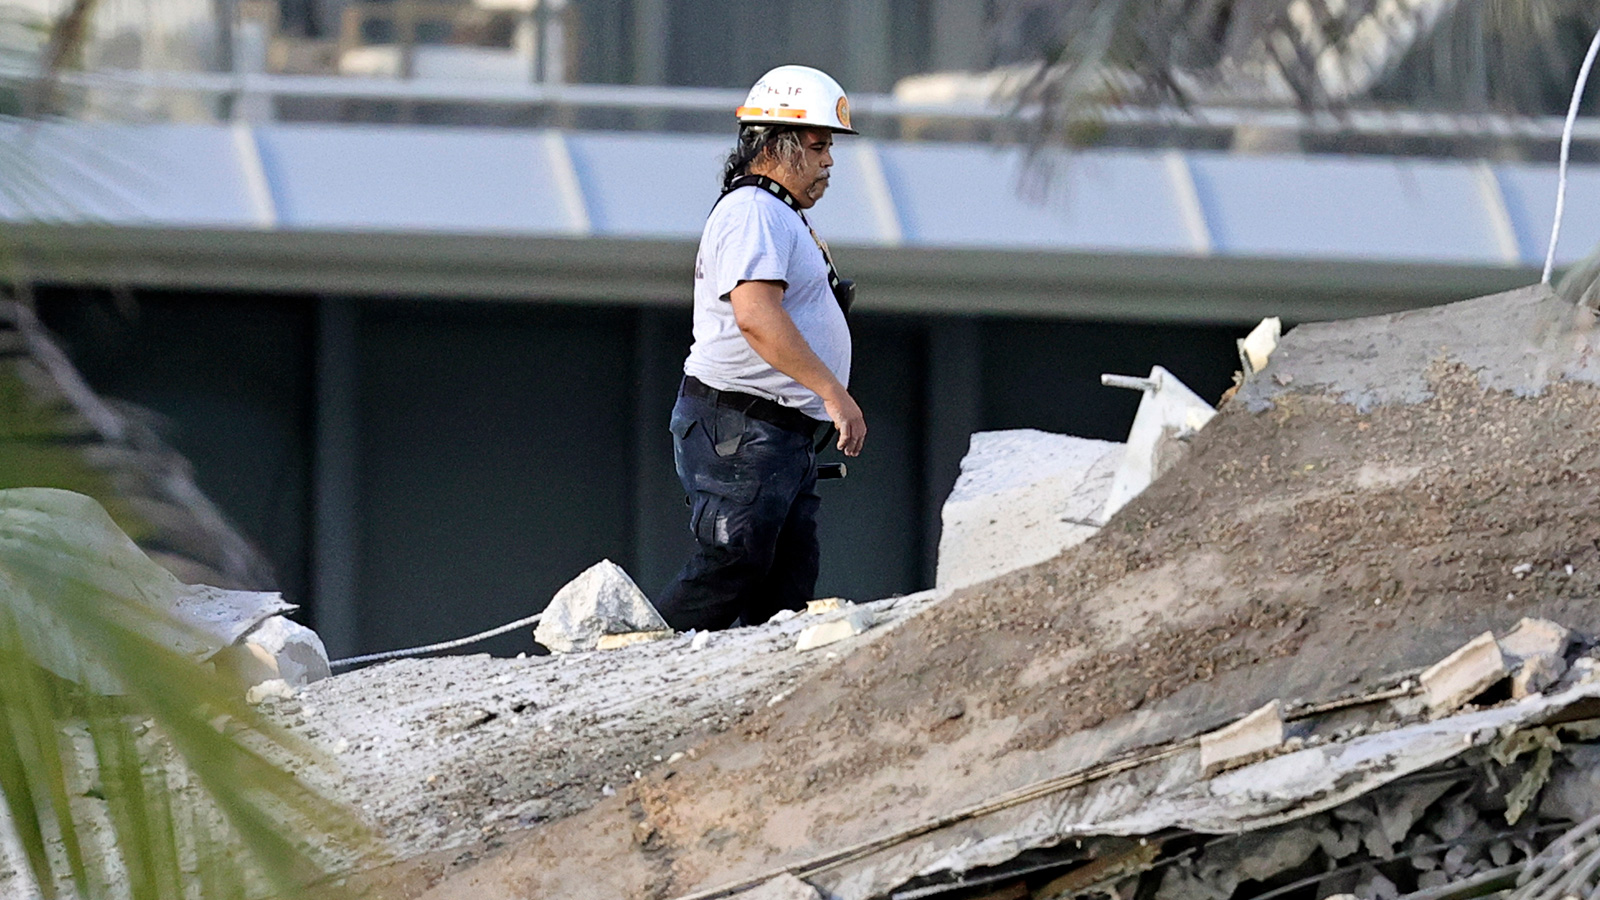 Fire rescue personnel conduct a search and rescue through the rubble of the Champlain Towers South Condo on Thursday.